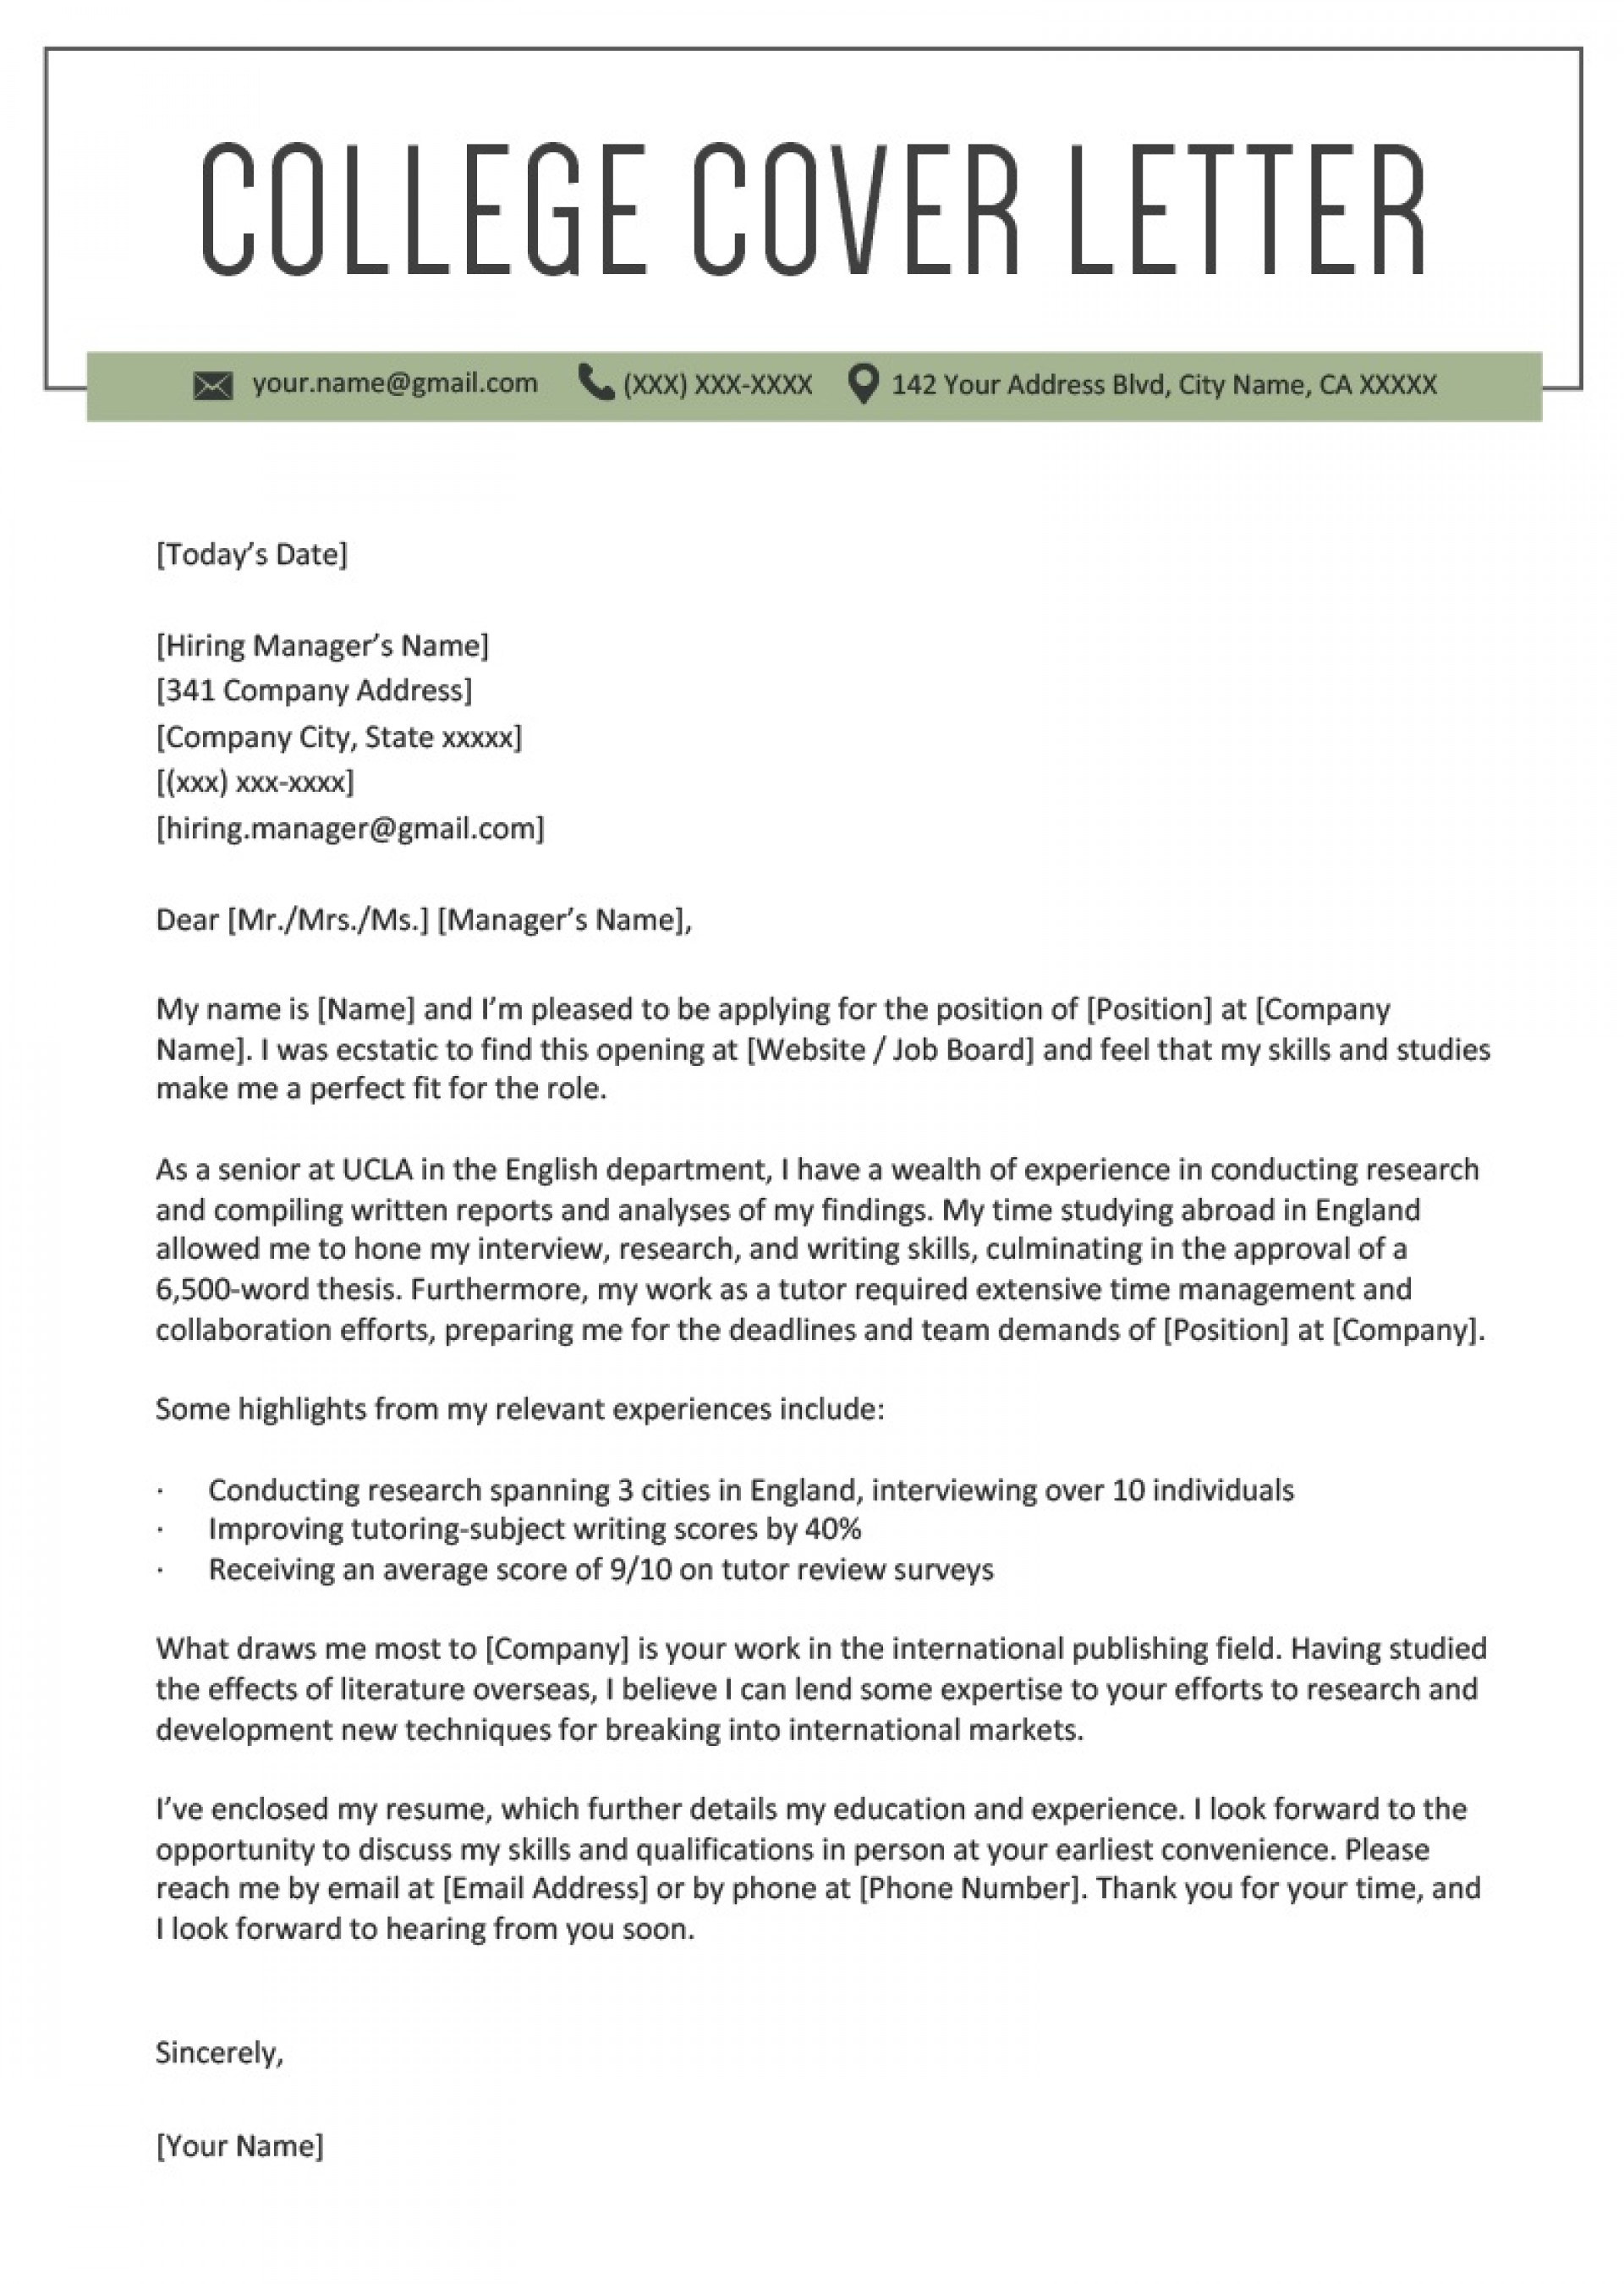 College Cover Letter Template from www.addictionary.org